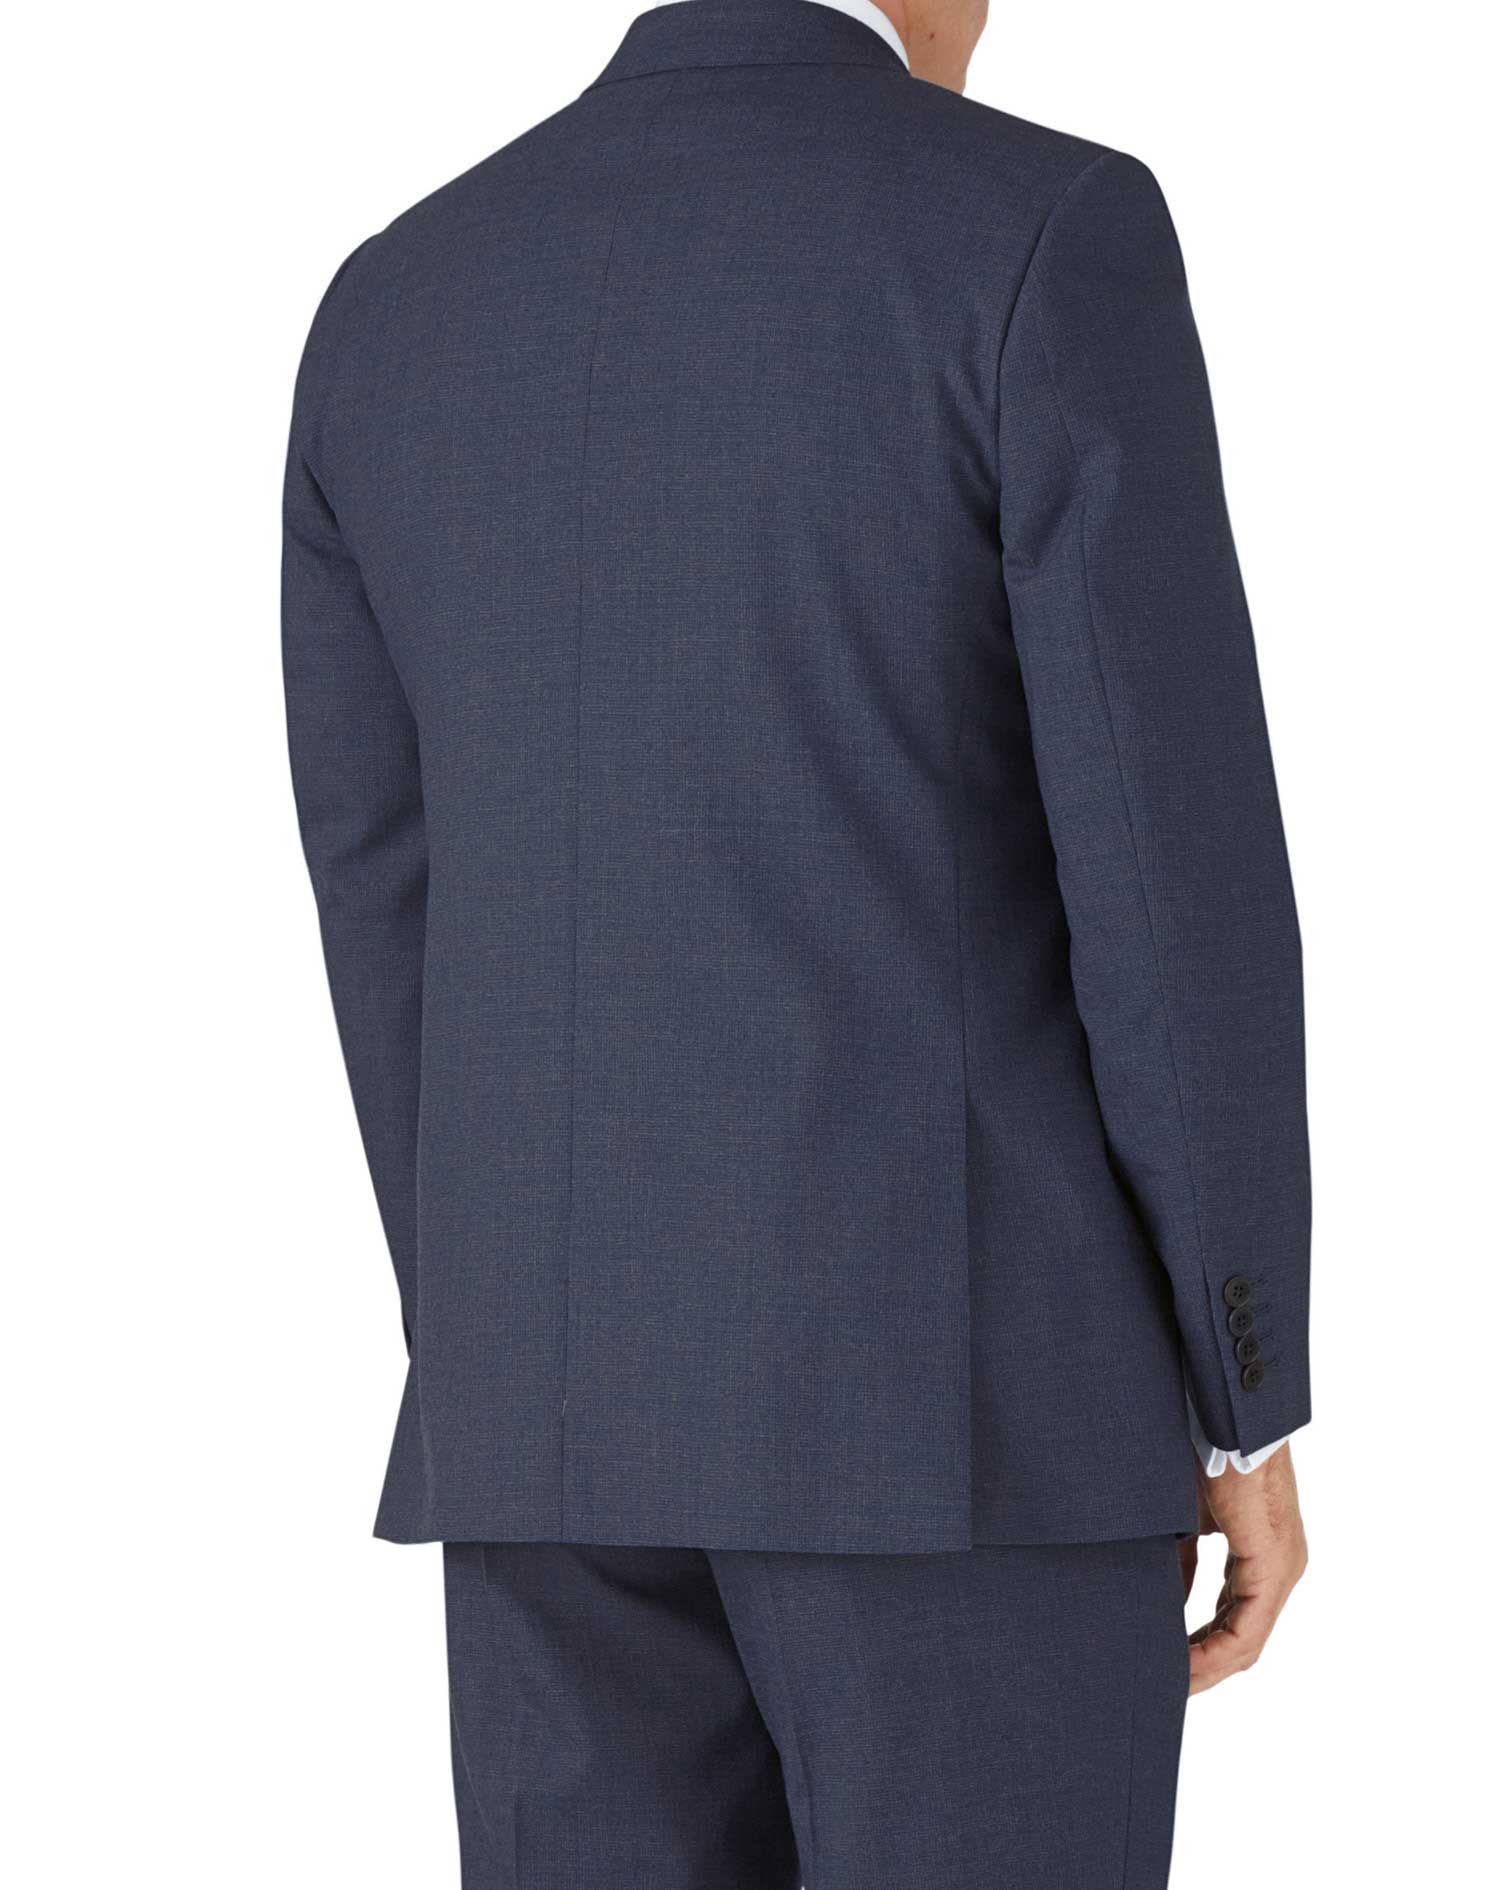 Airforce blue puppytooth classic fit Panama business suit jacket